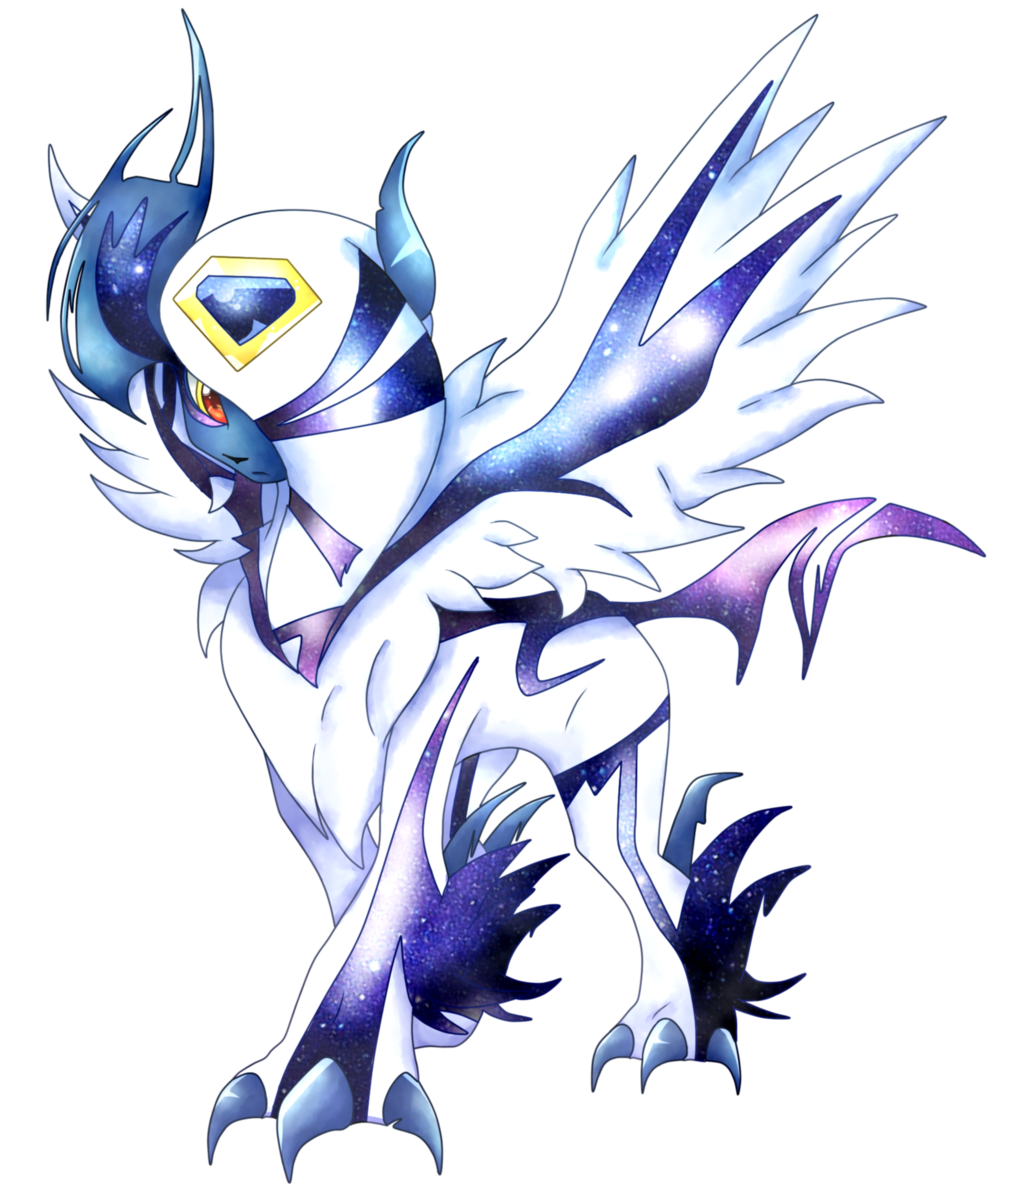 Mega Absol (Shiny Theory) by HGSS94 on DeviantArt